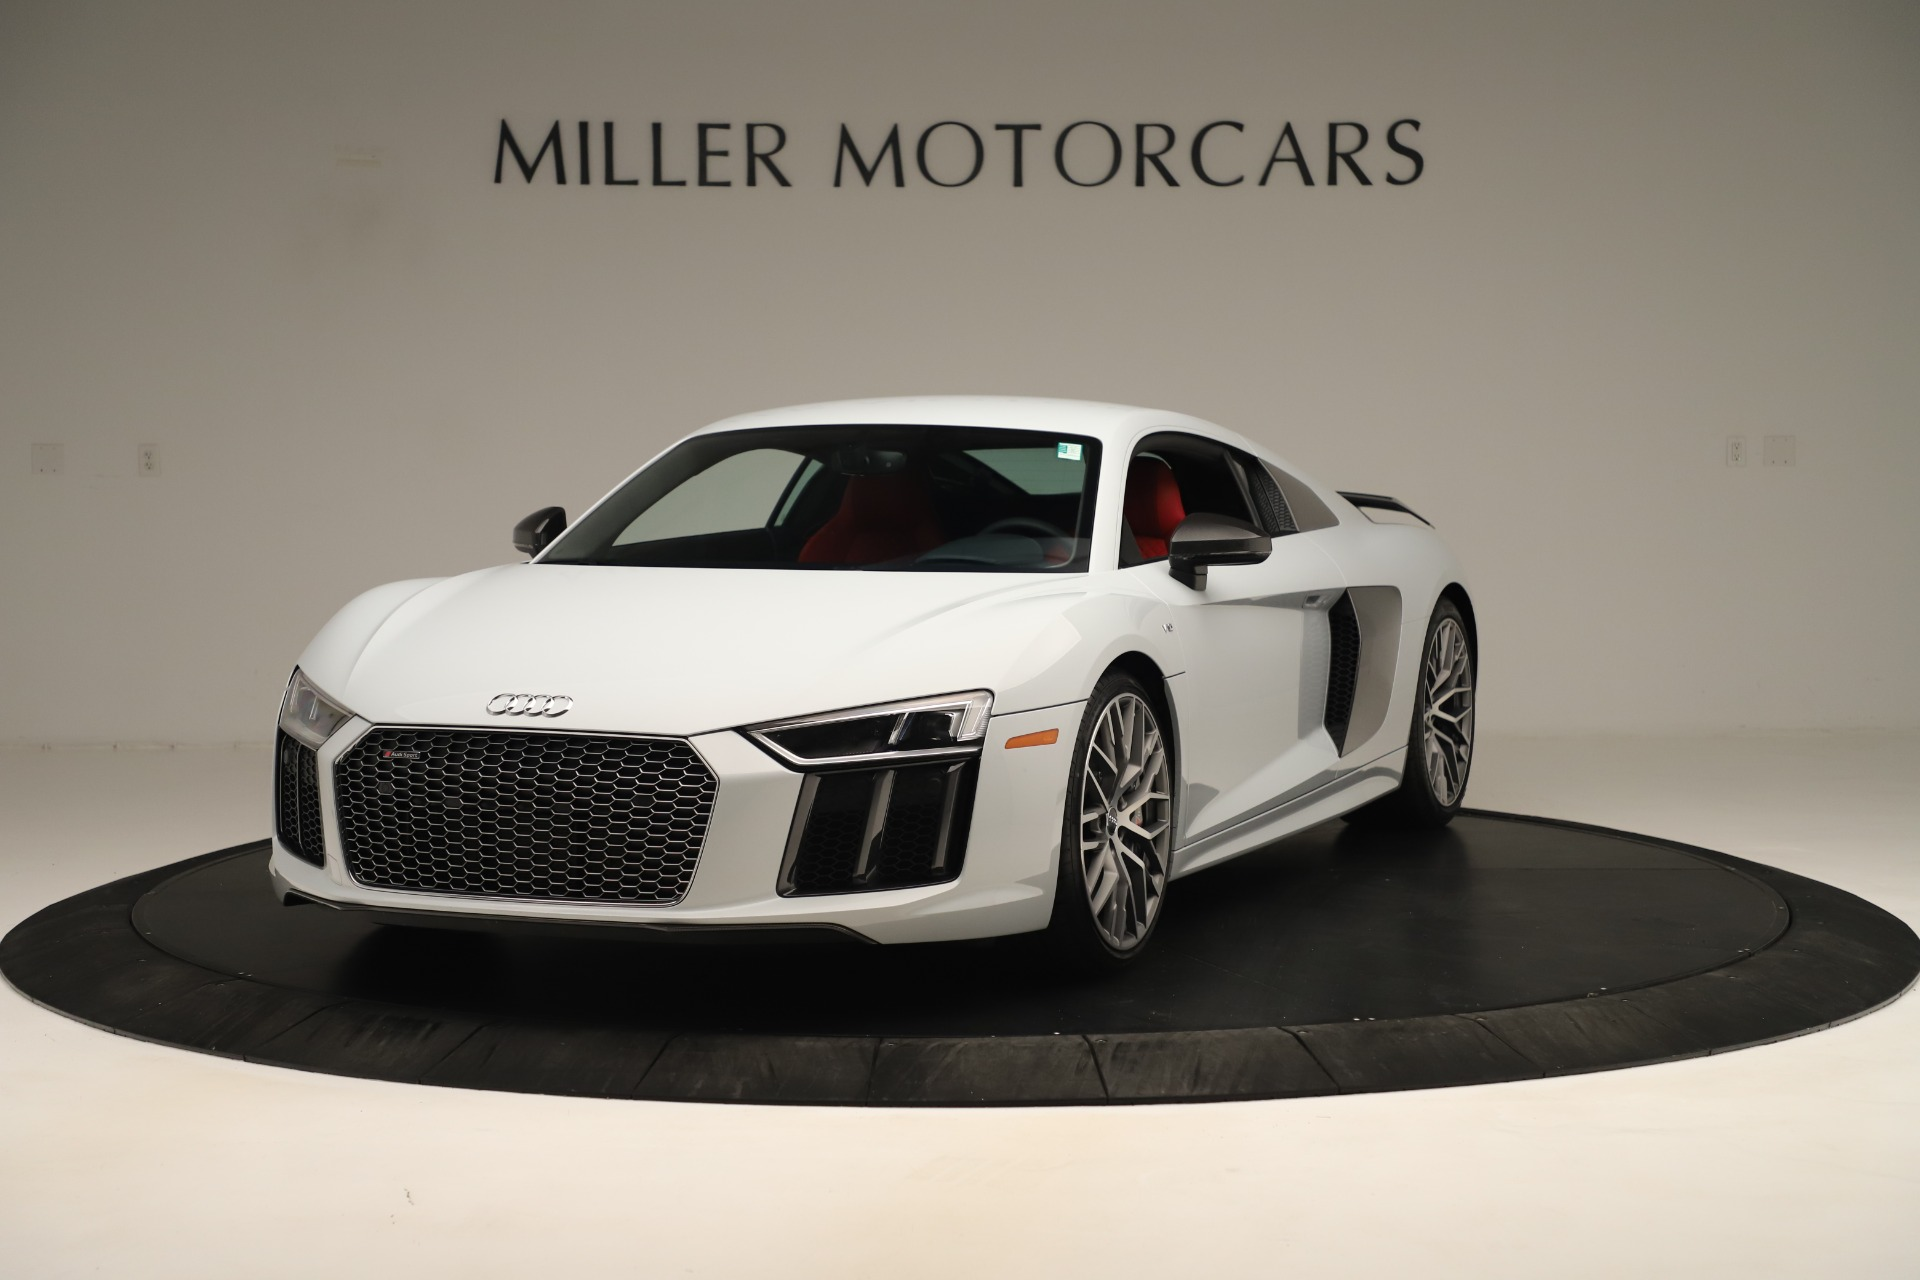 Used 2018 Audi R8 5.2 quattro V10 Plus for sale Sold at Aston Martin of Greenwich in Greenwich CT 06830 1